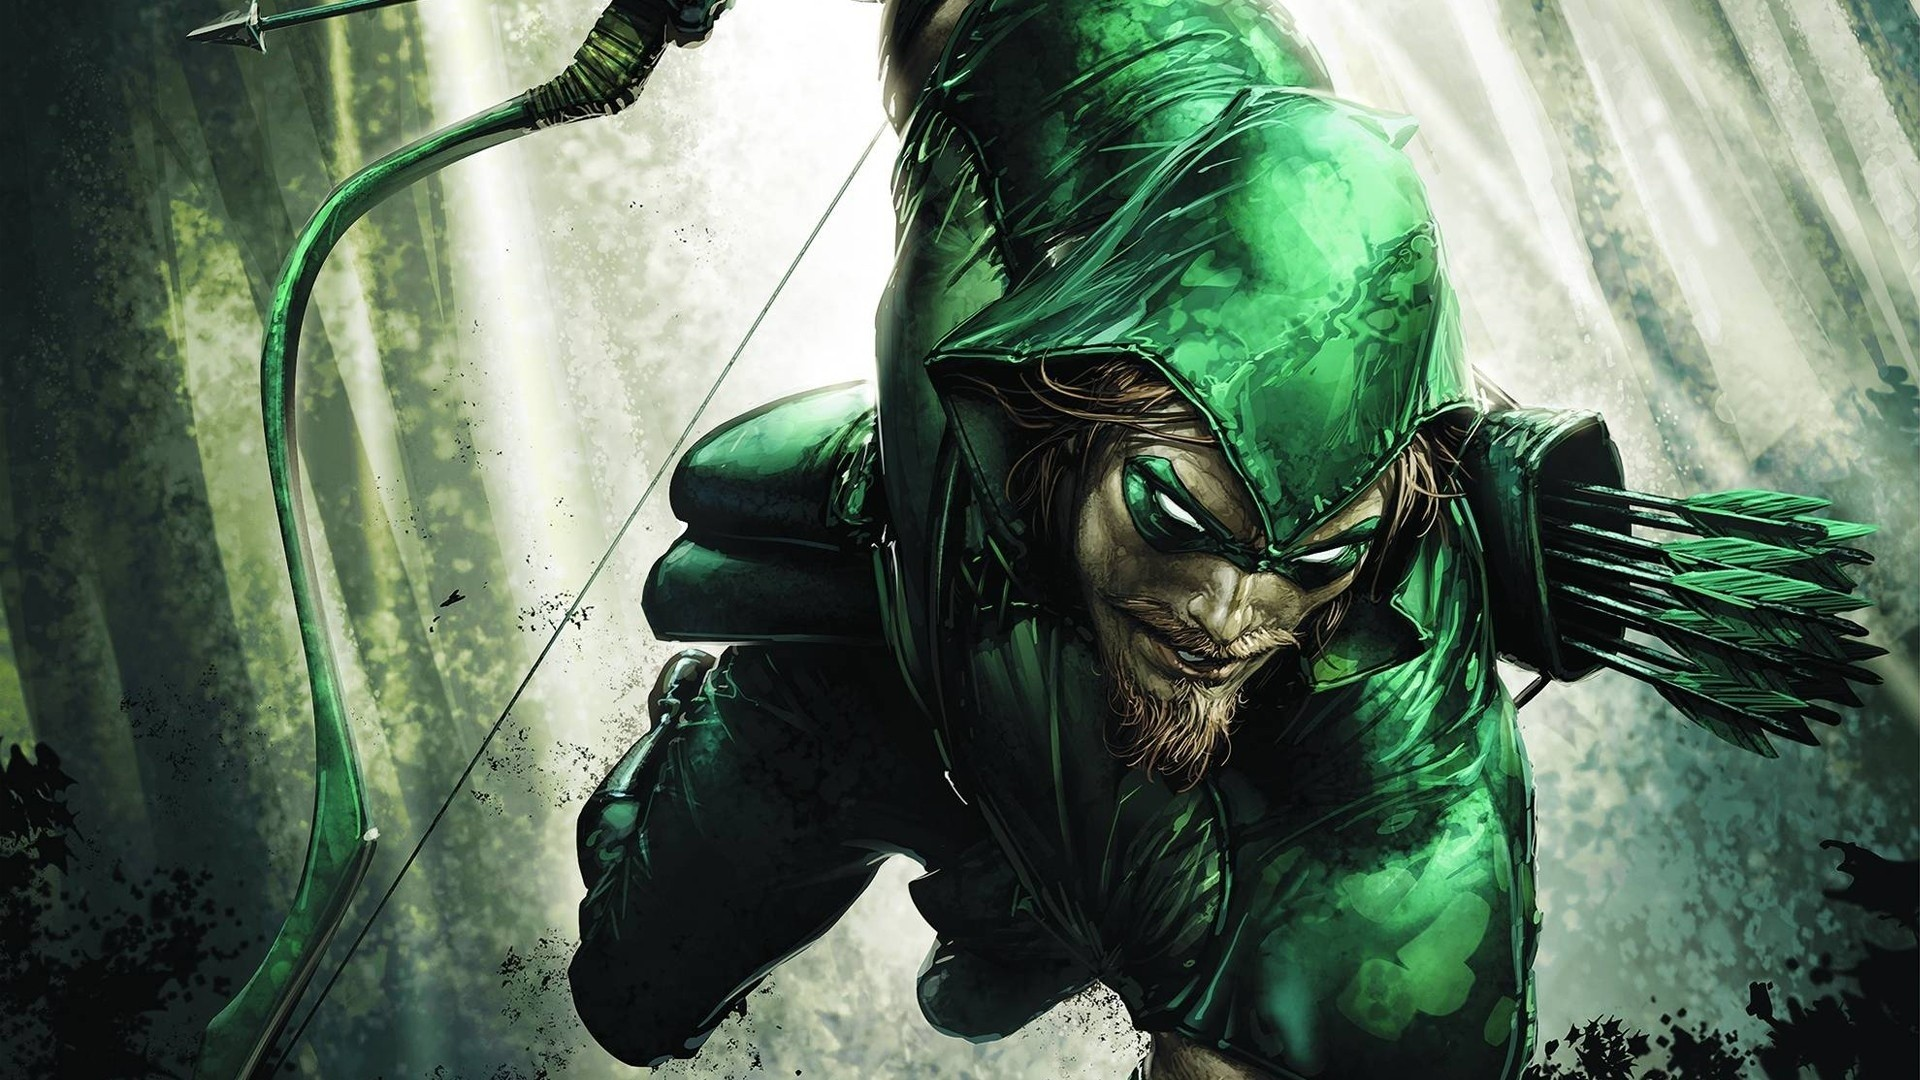 Green Arrow wallpaper ·① Download free awesome full HD